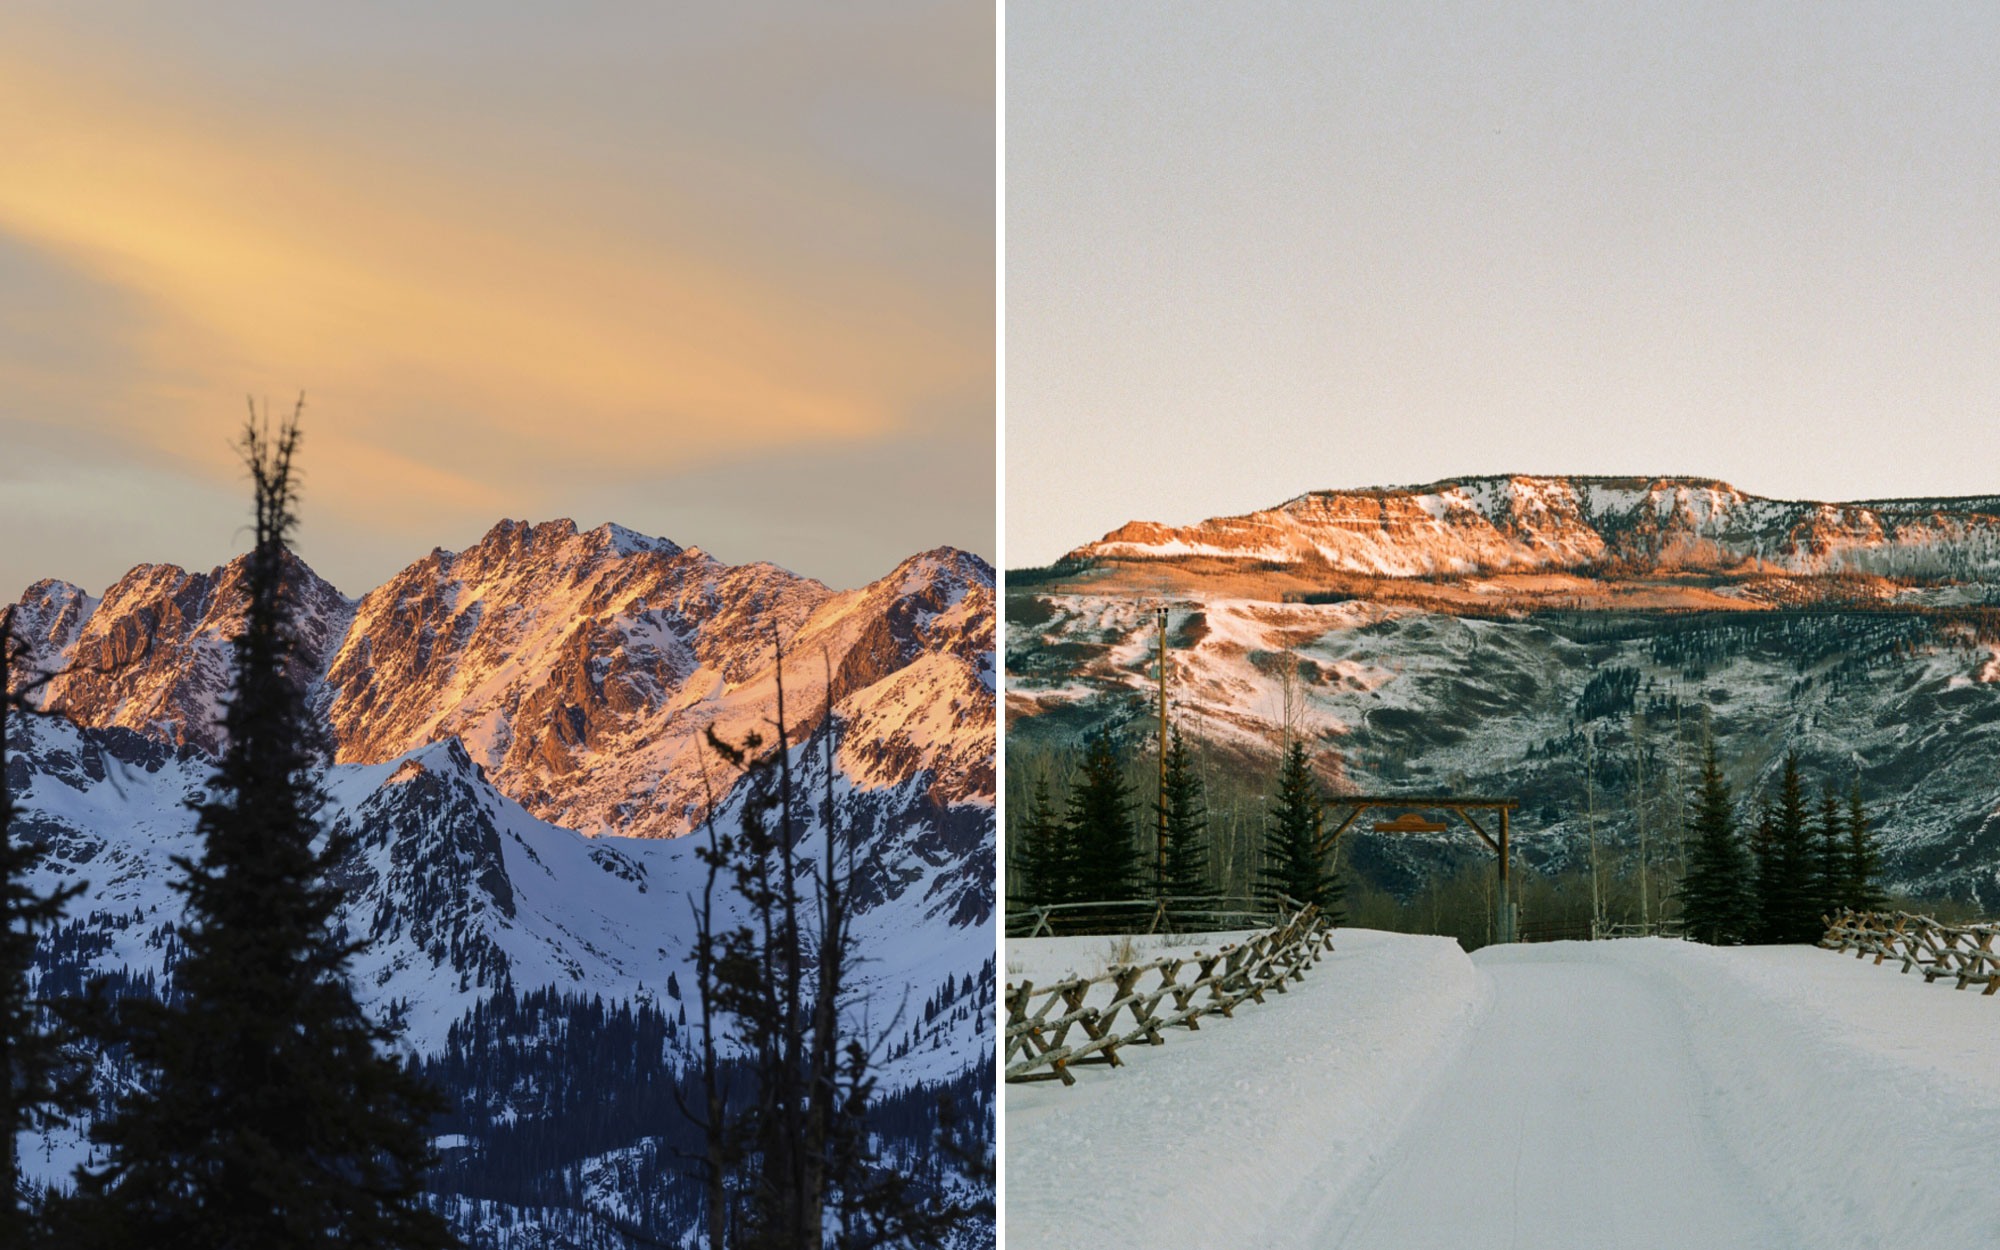 Aspen vs. Vail: How to Decide